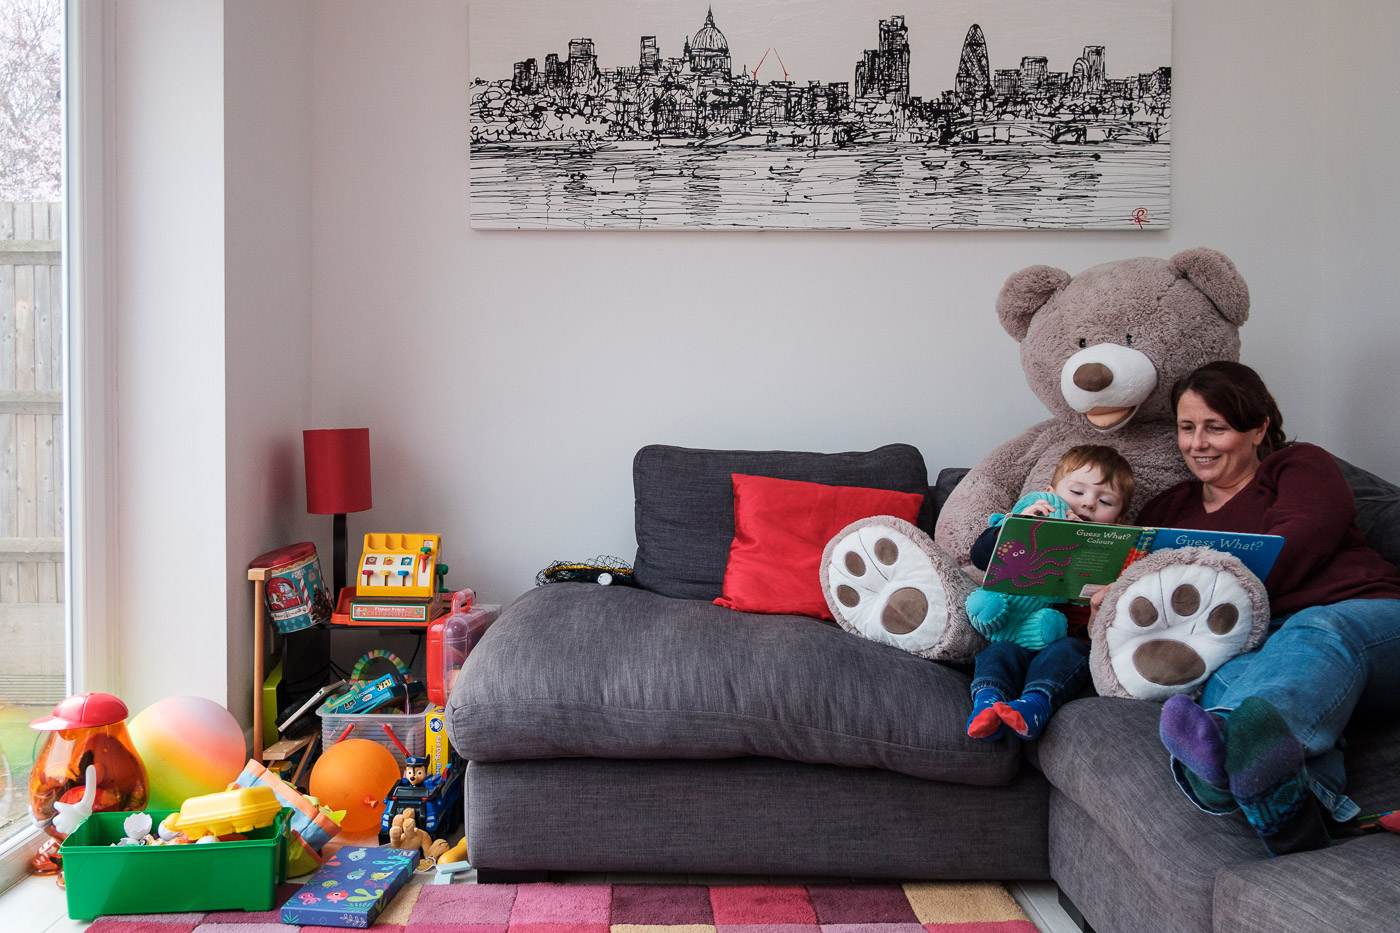 Mother and child reading on sofa with teddy